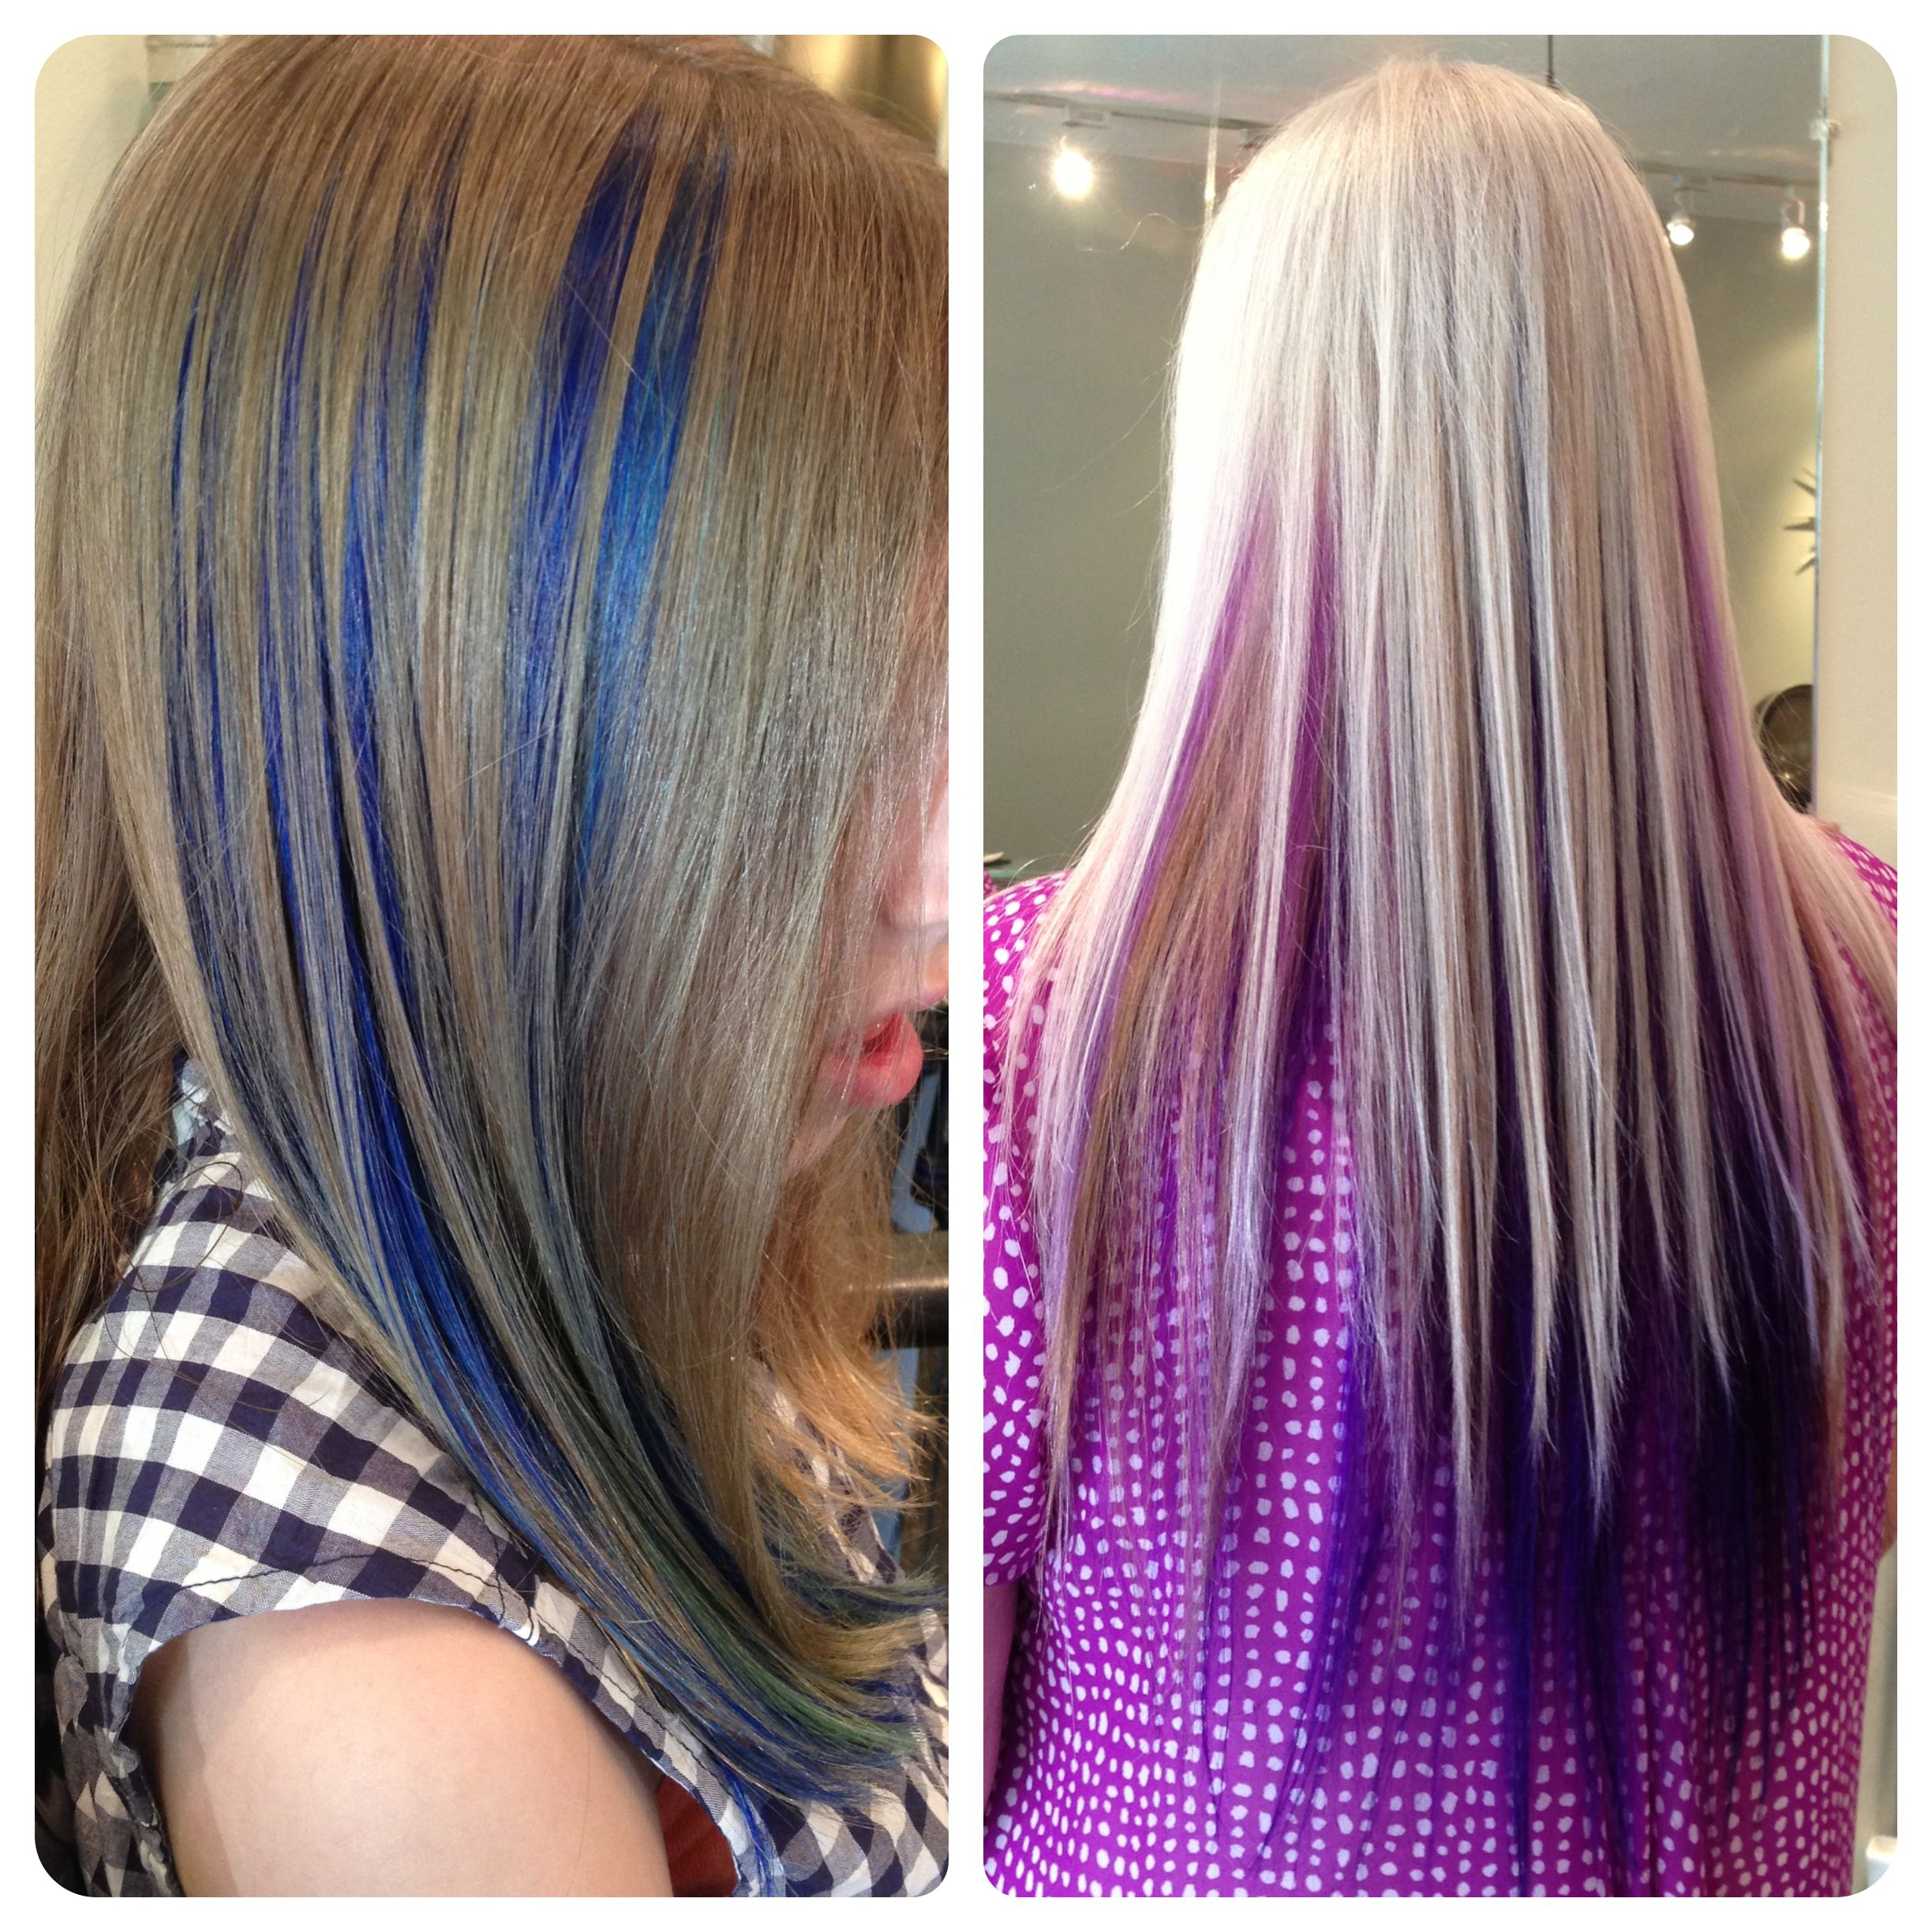 Blue and purple highlight peekaboo panels in brown and blonde hair